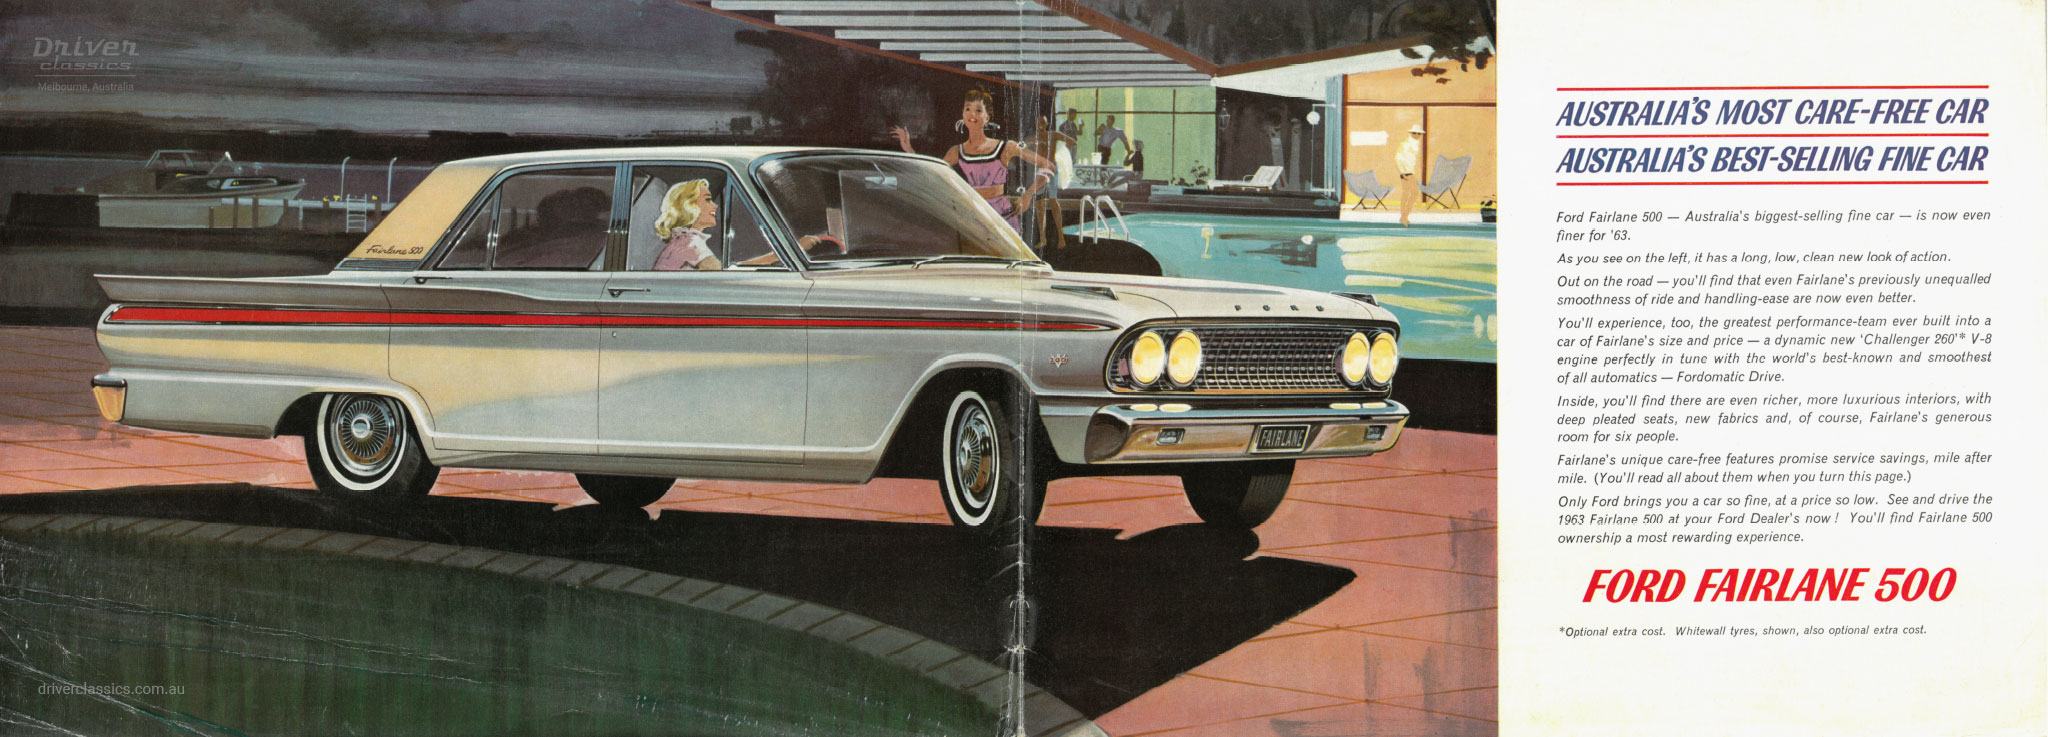 Page from 1963 Ford Fairlane 500 brochure